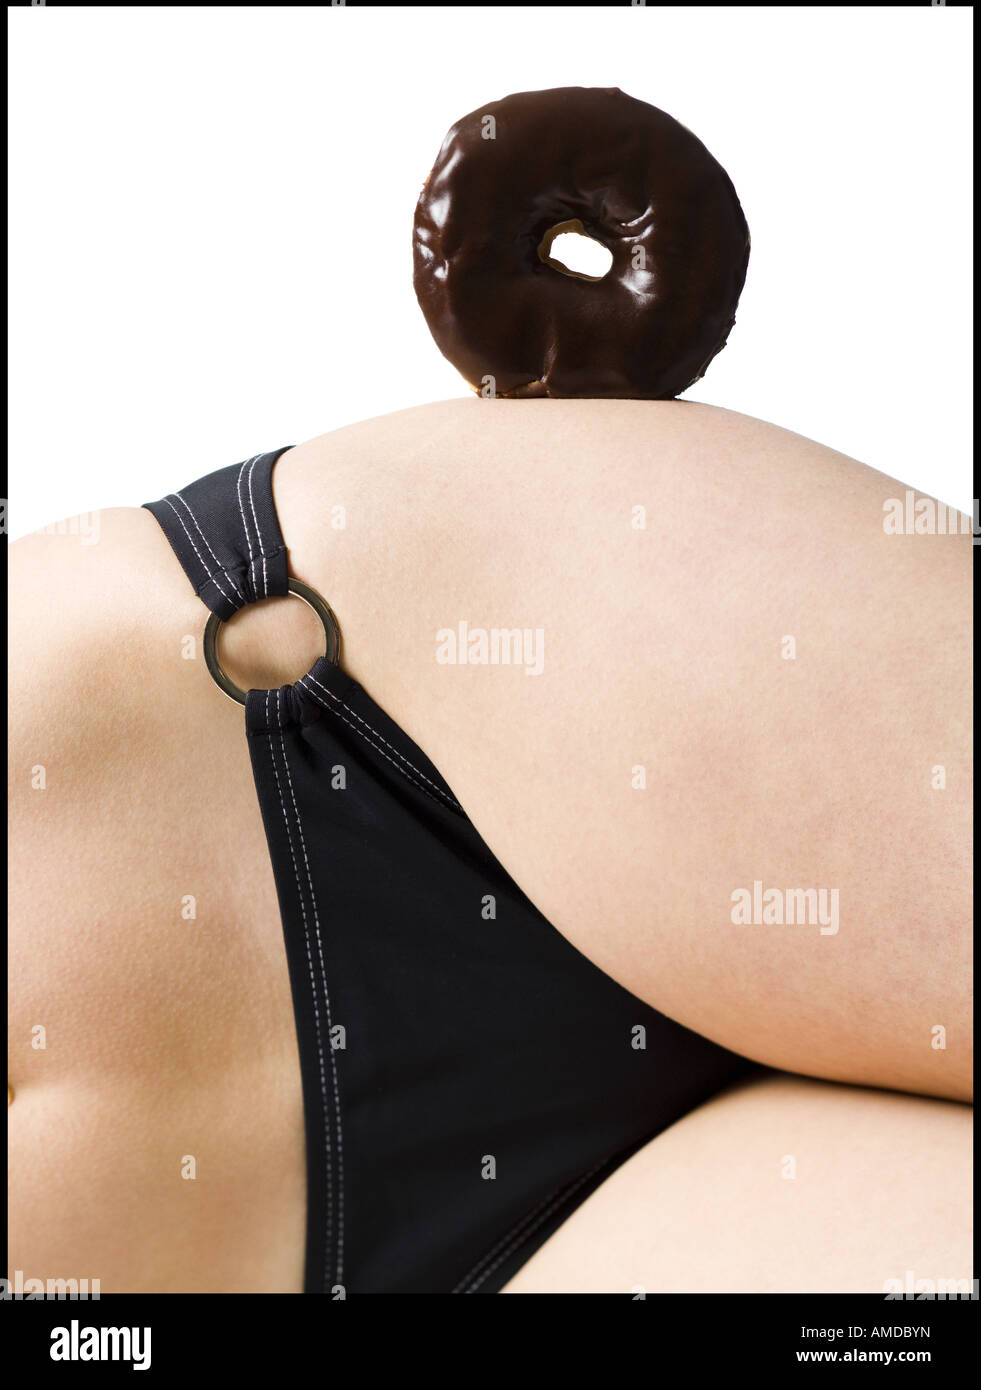 Detailed view of woman in bikini with donut on hip - Stock Image